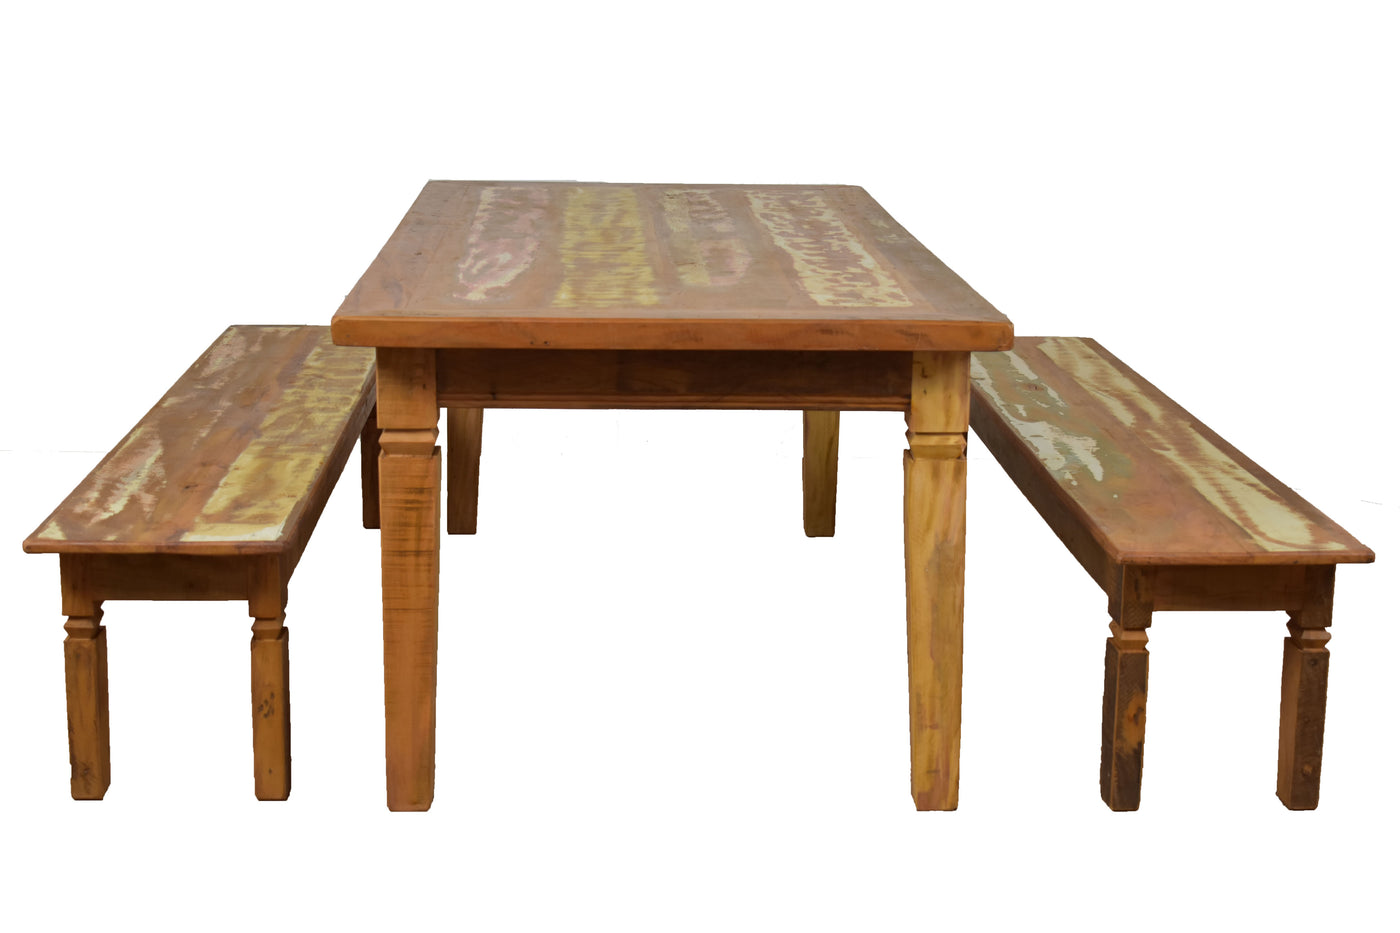 Reclaimed Wood Dining Table Save The Planet Furniture - Reclaimed hardwood dining table